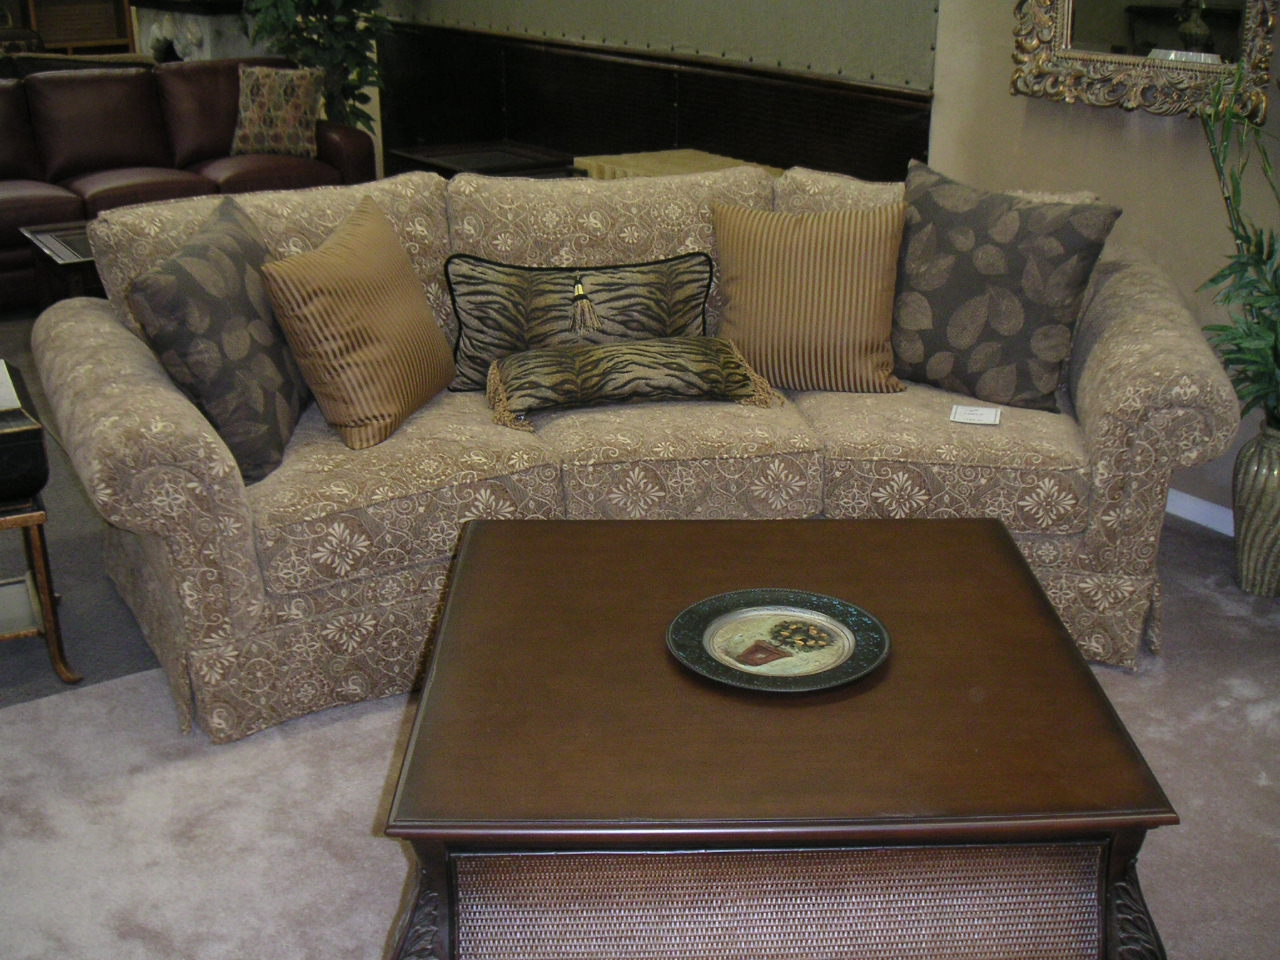 Cataline Angled Rolled Arm Sofa